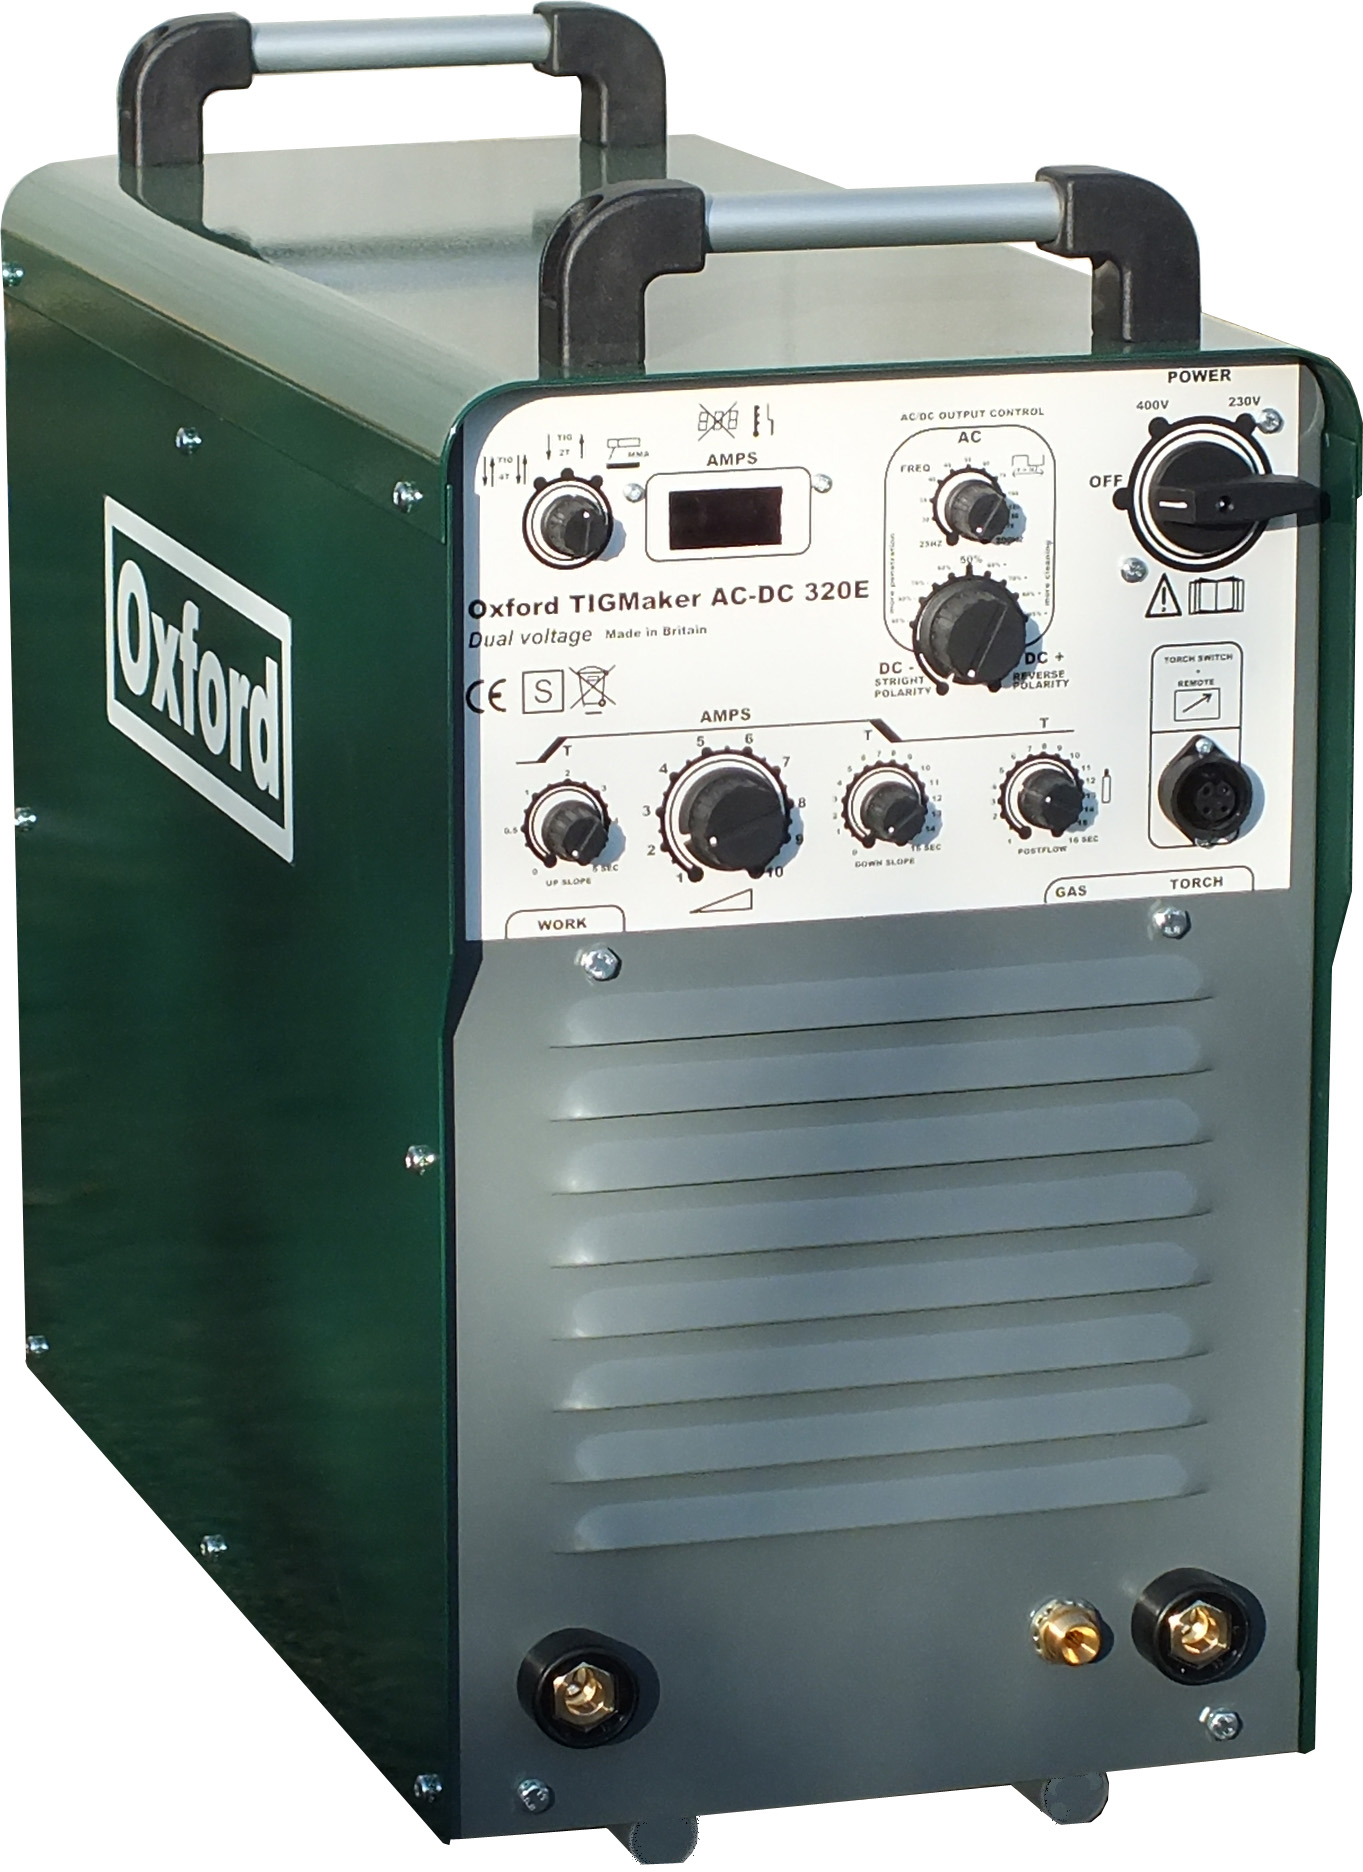 Oxford  TIGMaker 330E dual voltage 230V/400V Image